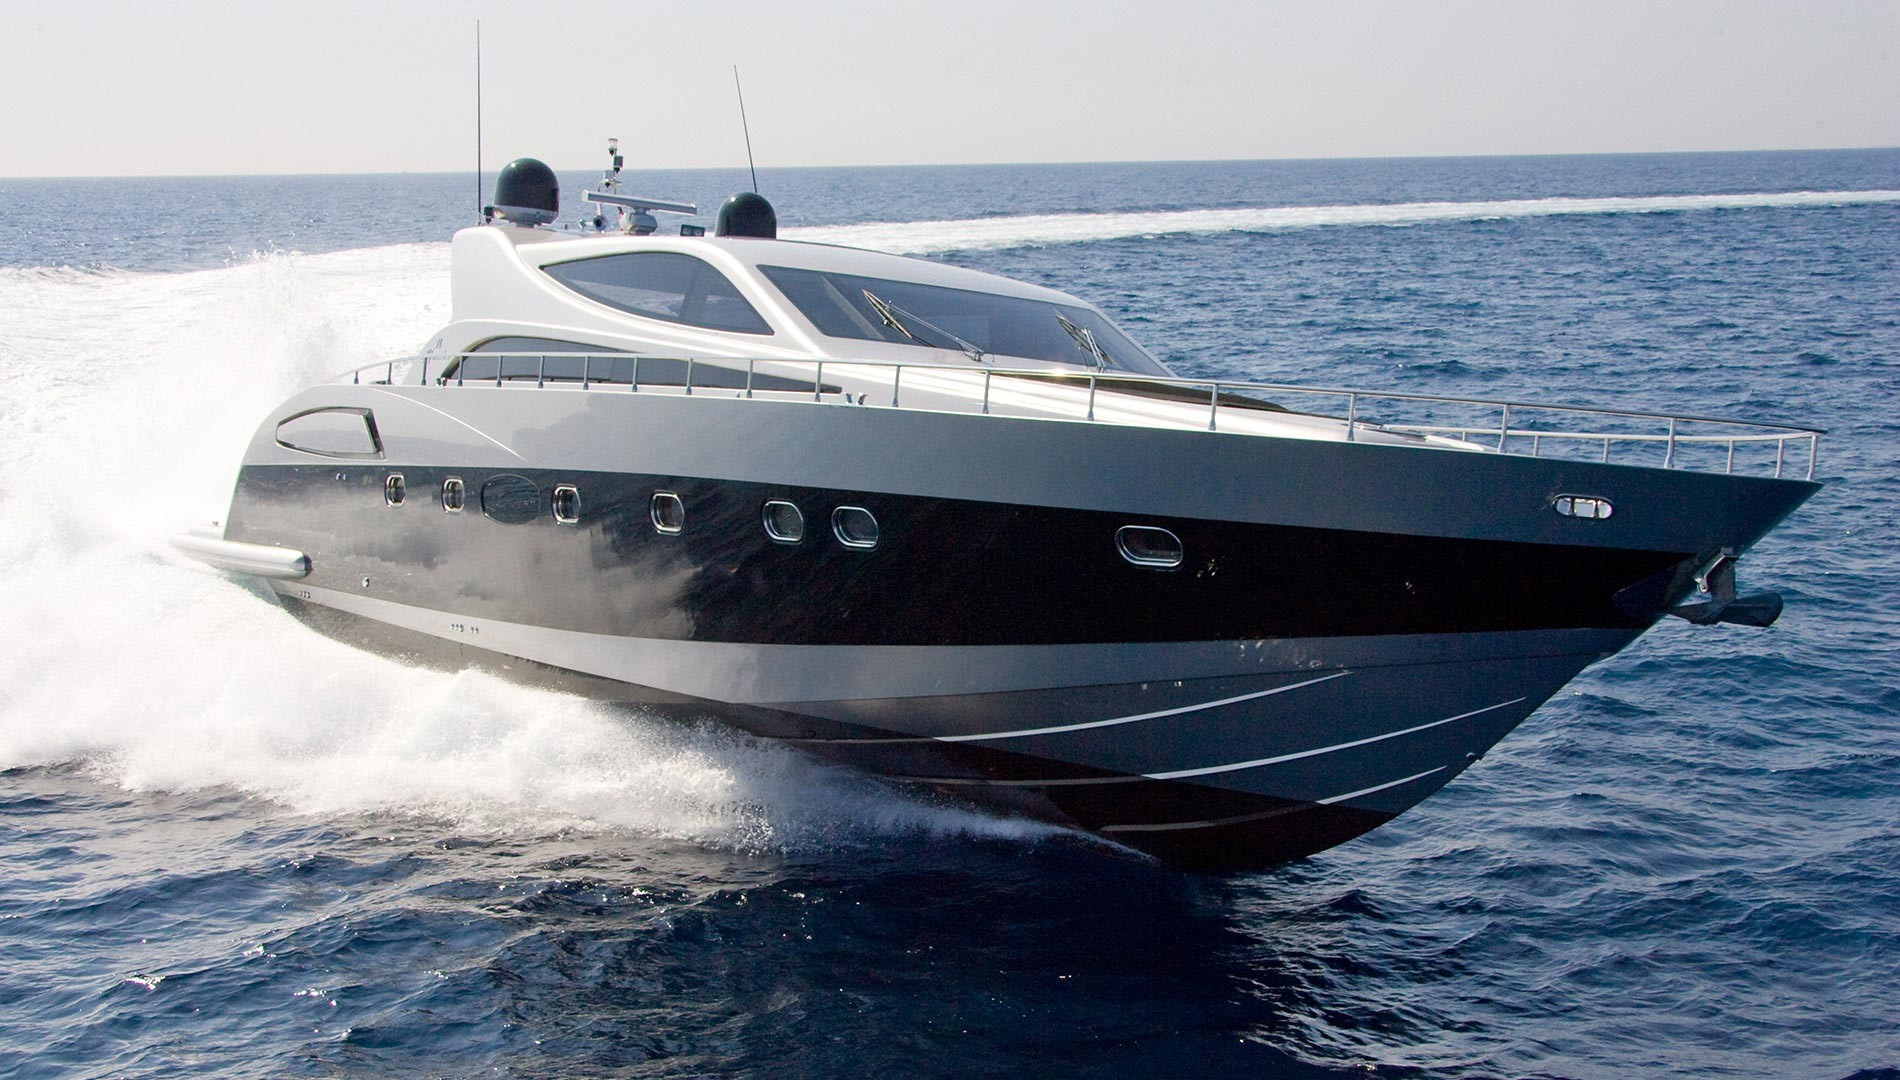 Full Day Tour with Luxury Yacht